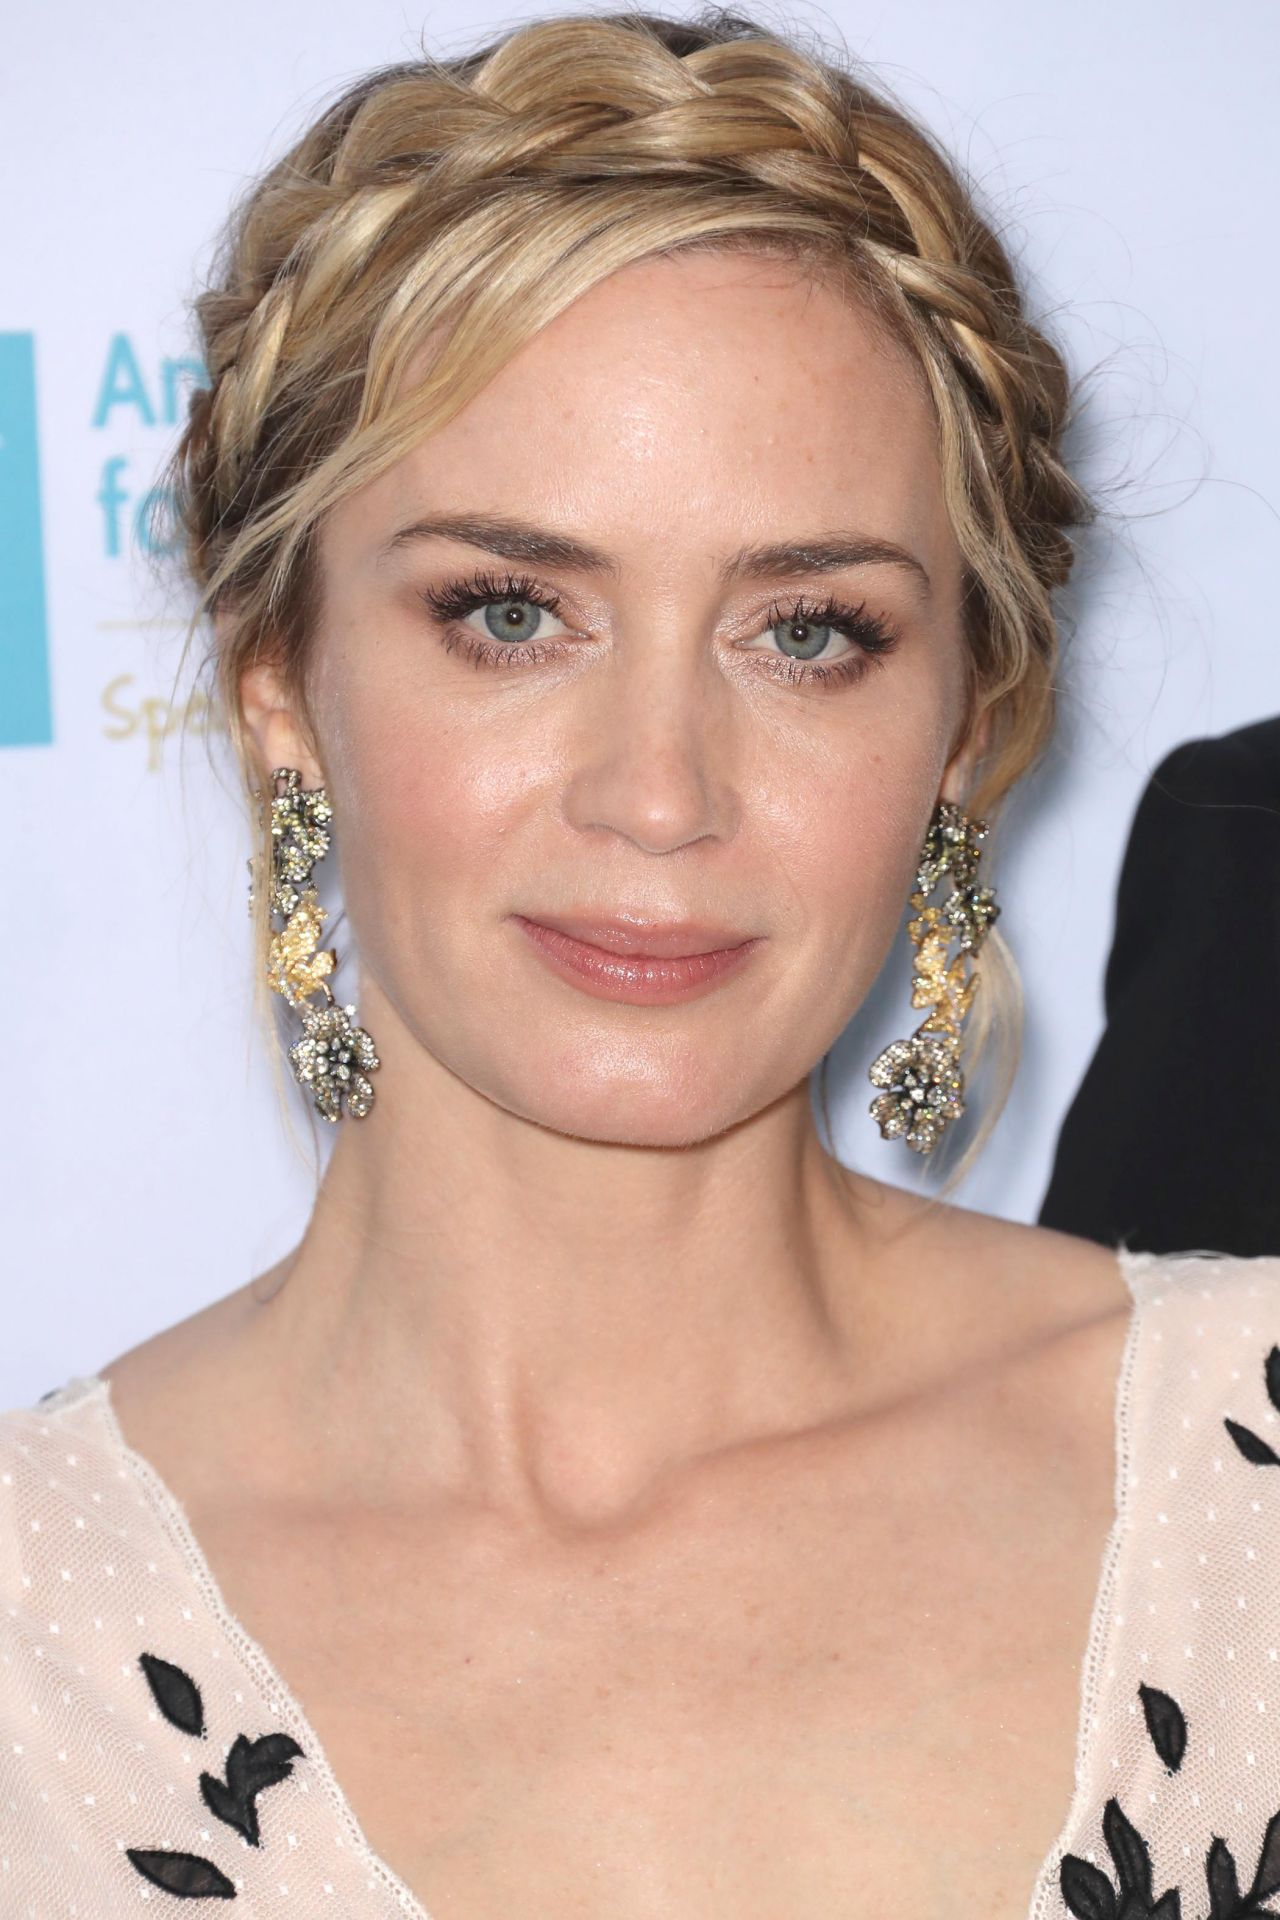 Emily Blunt - Freeing ...